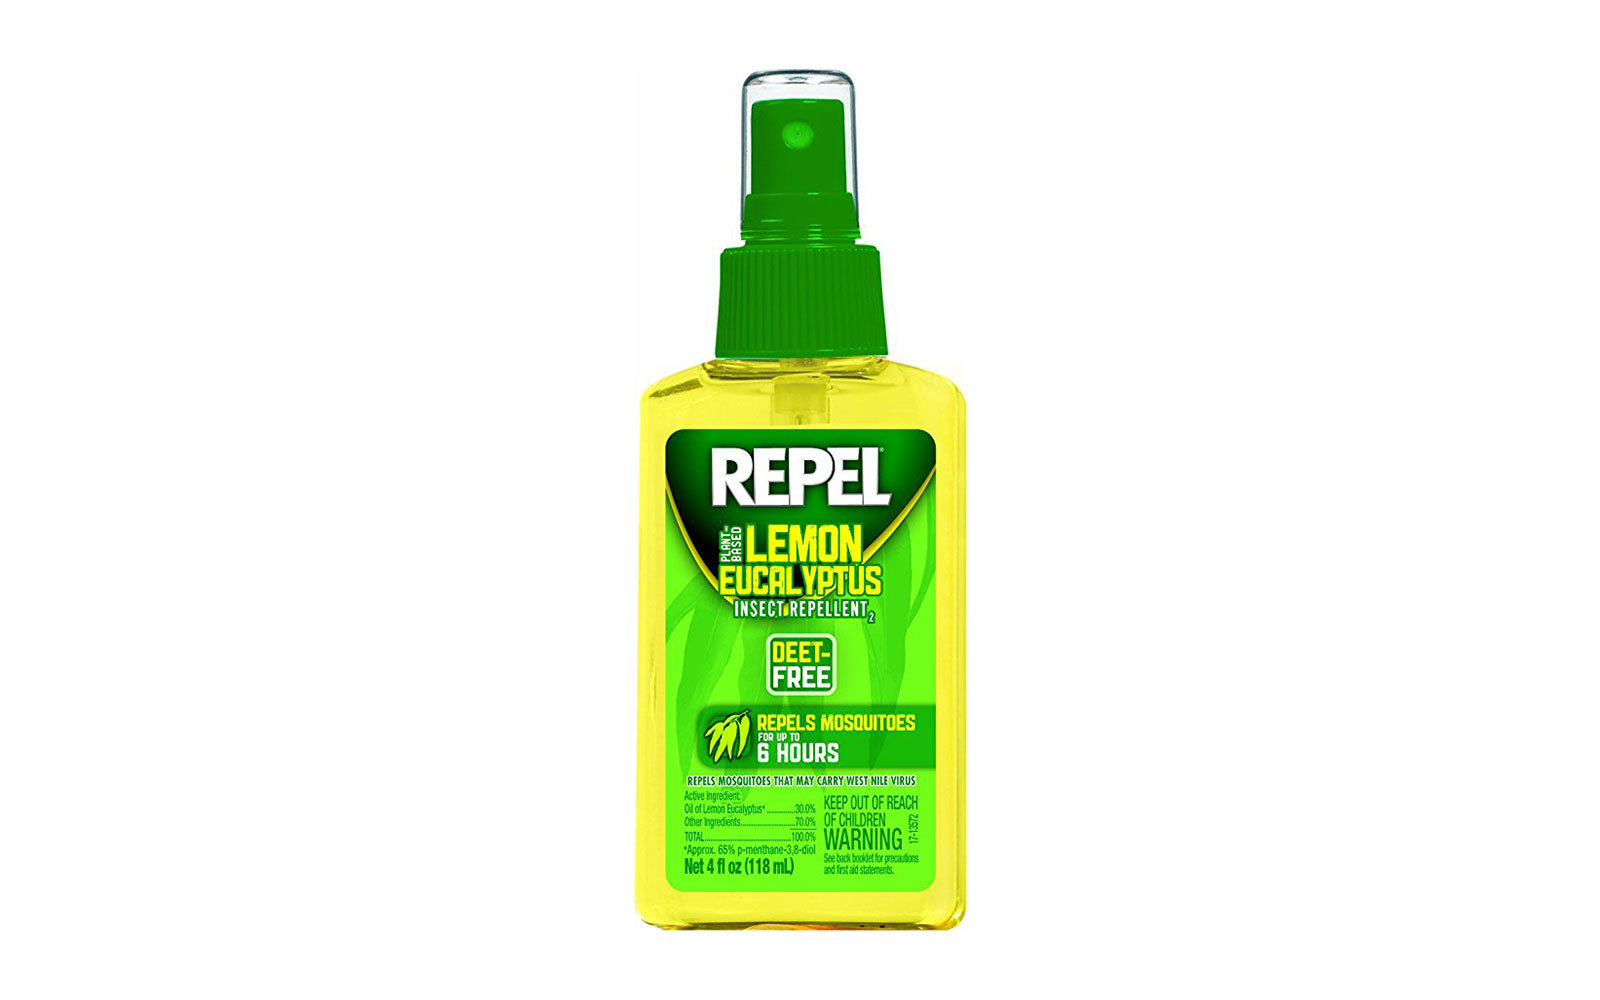 Repel Lemon Eucalyptus spray